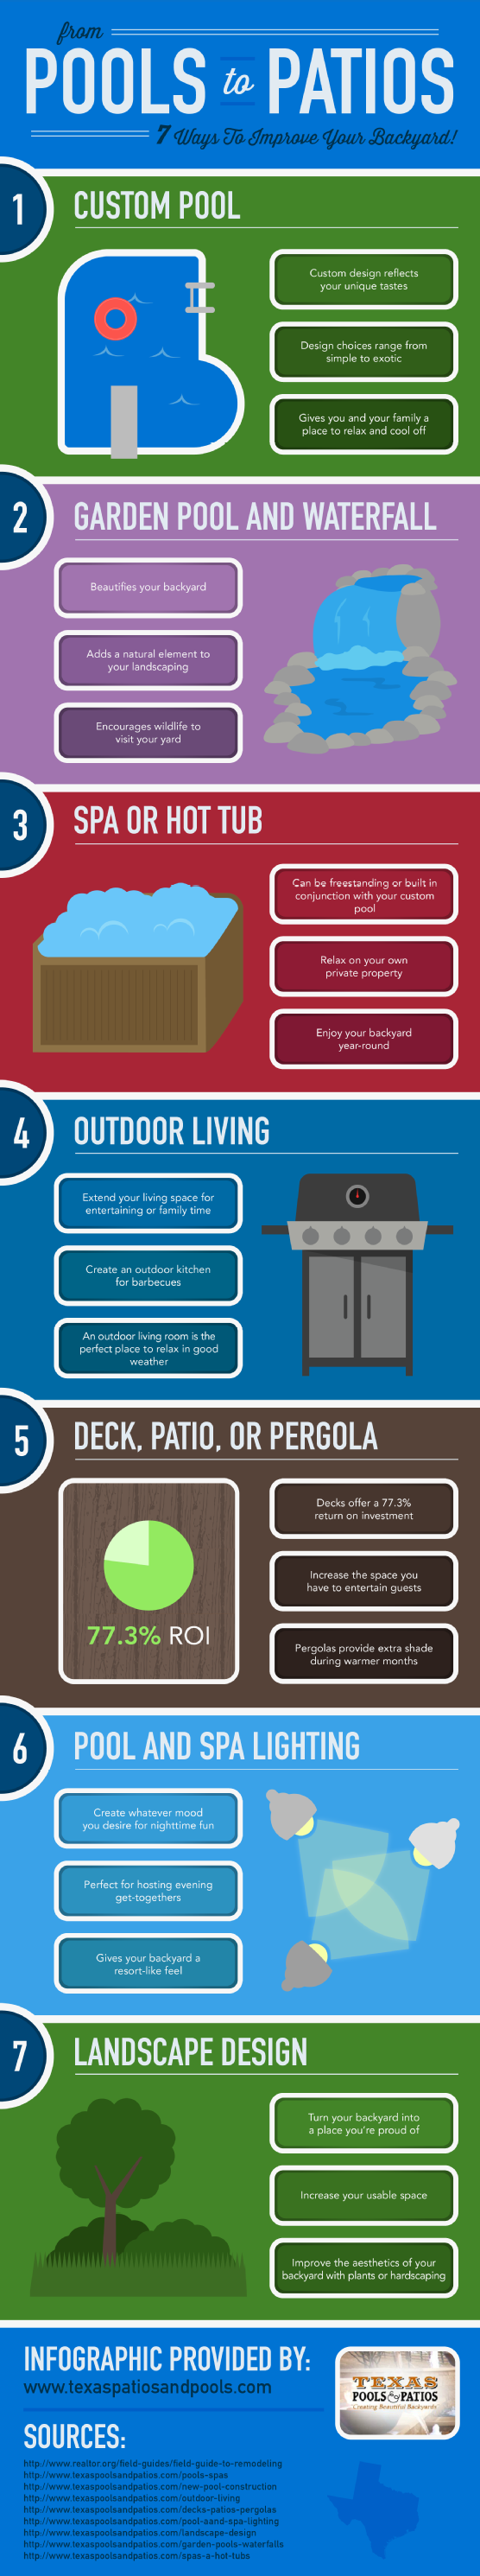 from-pools-to-patios-7-ways-to-improve-your-backyard_52155e0f1c20a